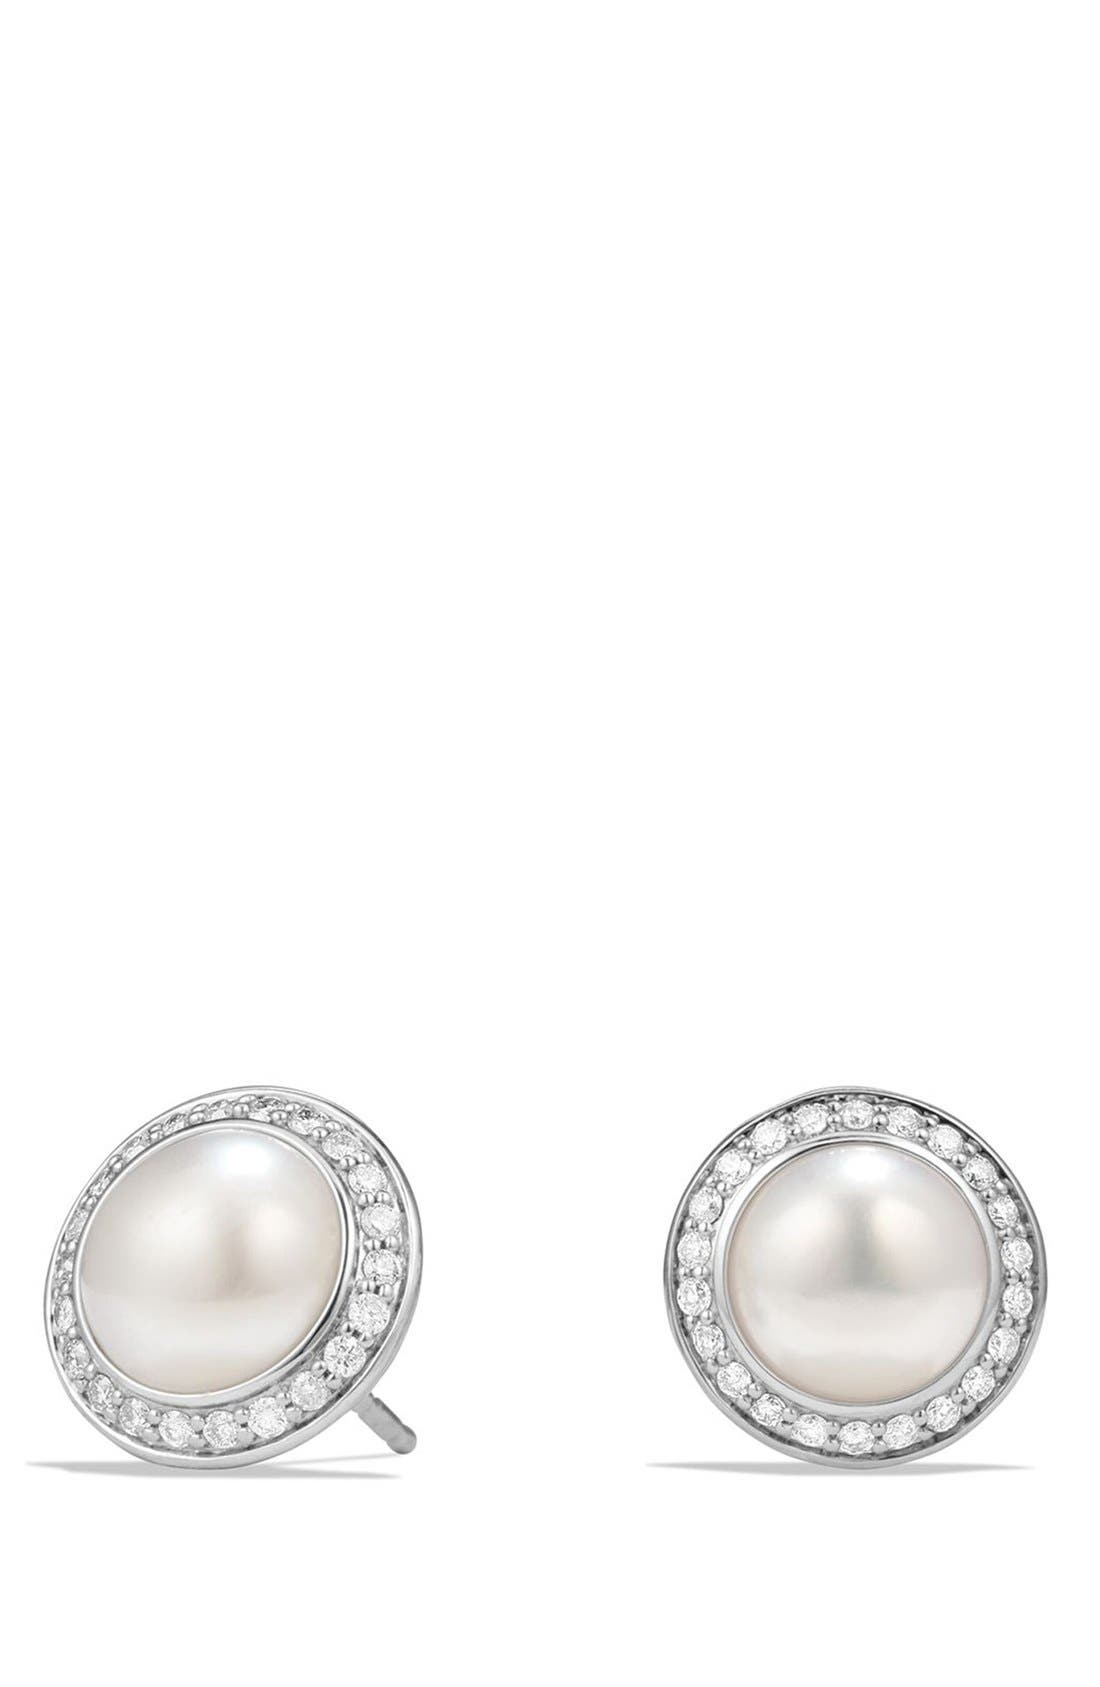 'Cerise' Petite Earrings with Pearls and Diamonds,                             Main thumbnail 1, color,                             Silver/ Pearl